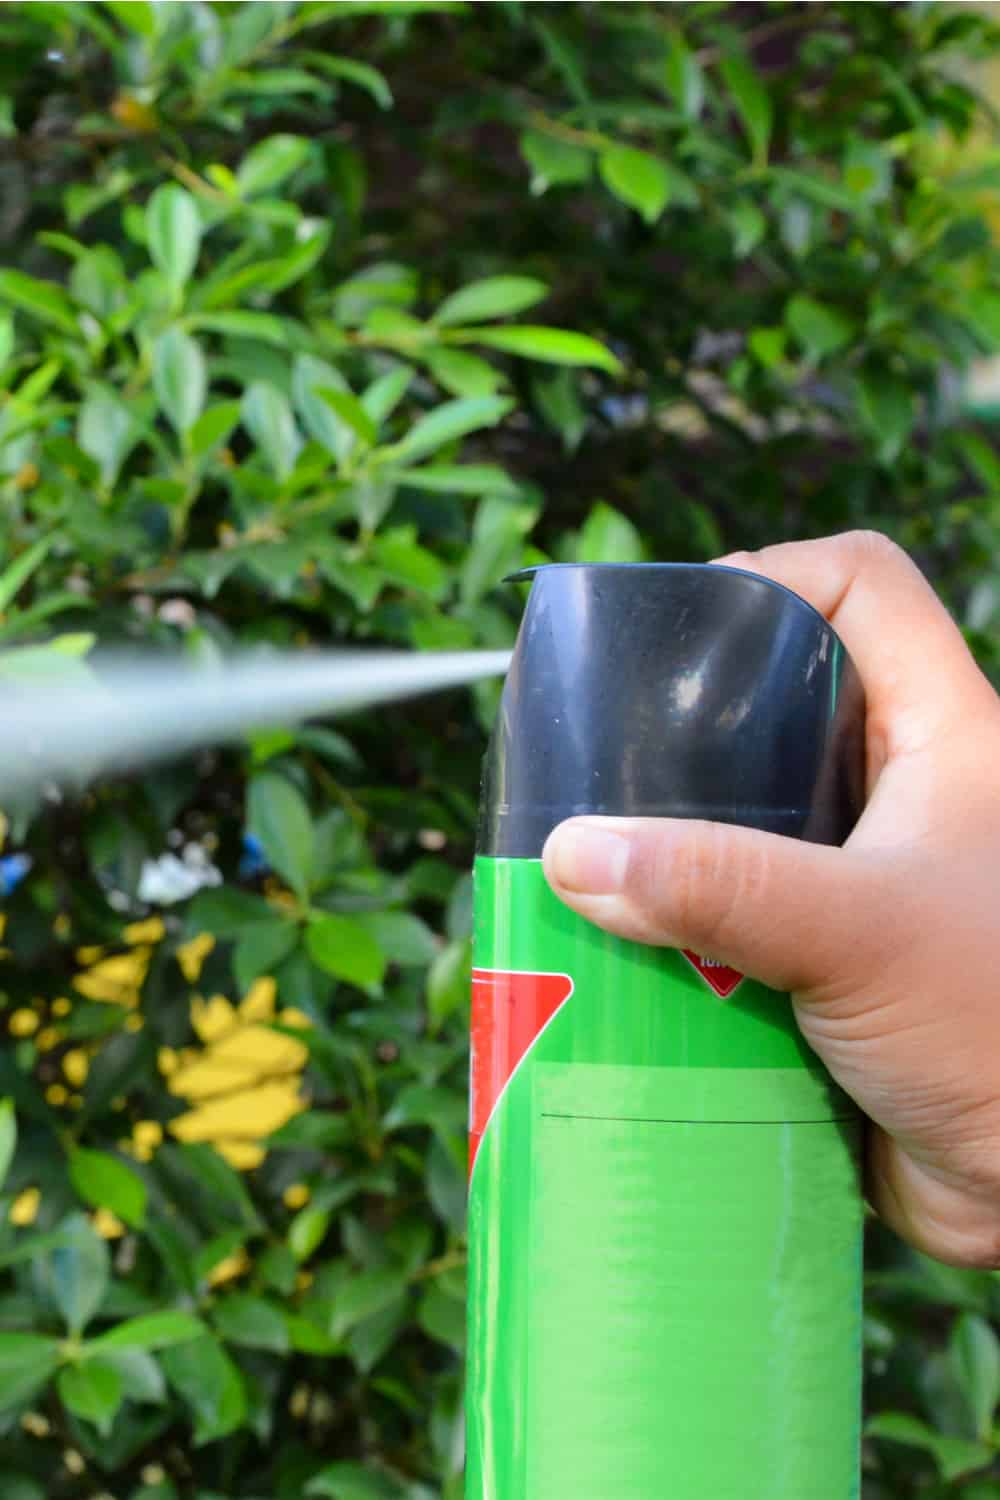 Use a shop-bought insecticide or natural repellents